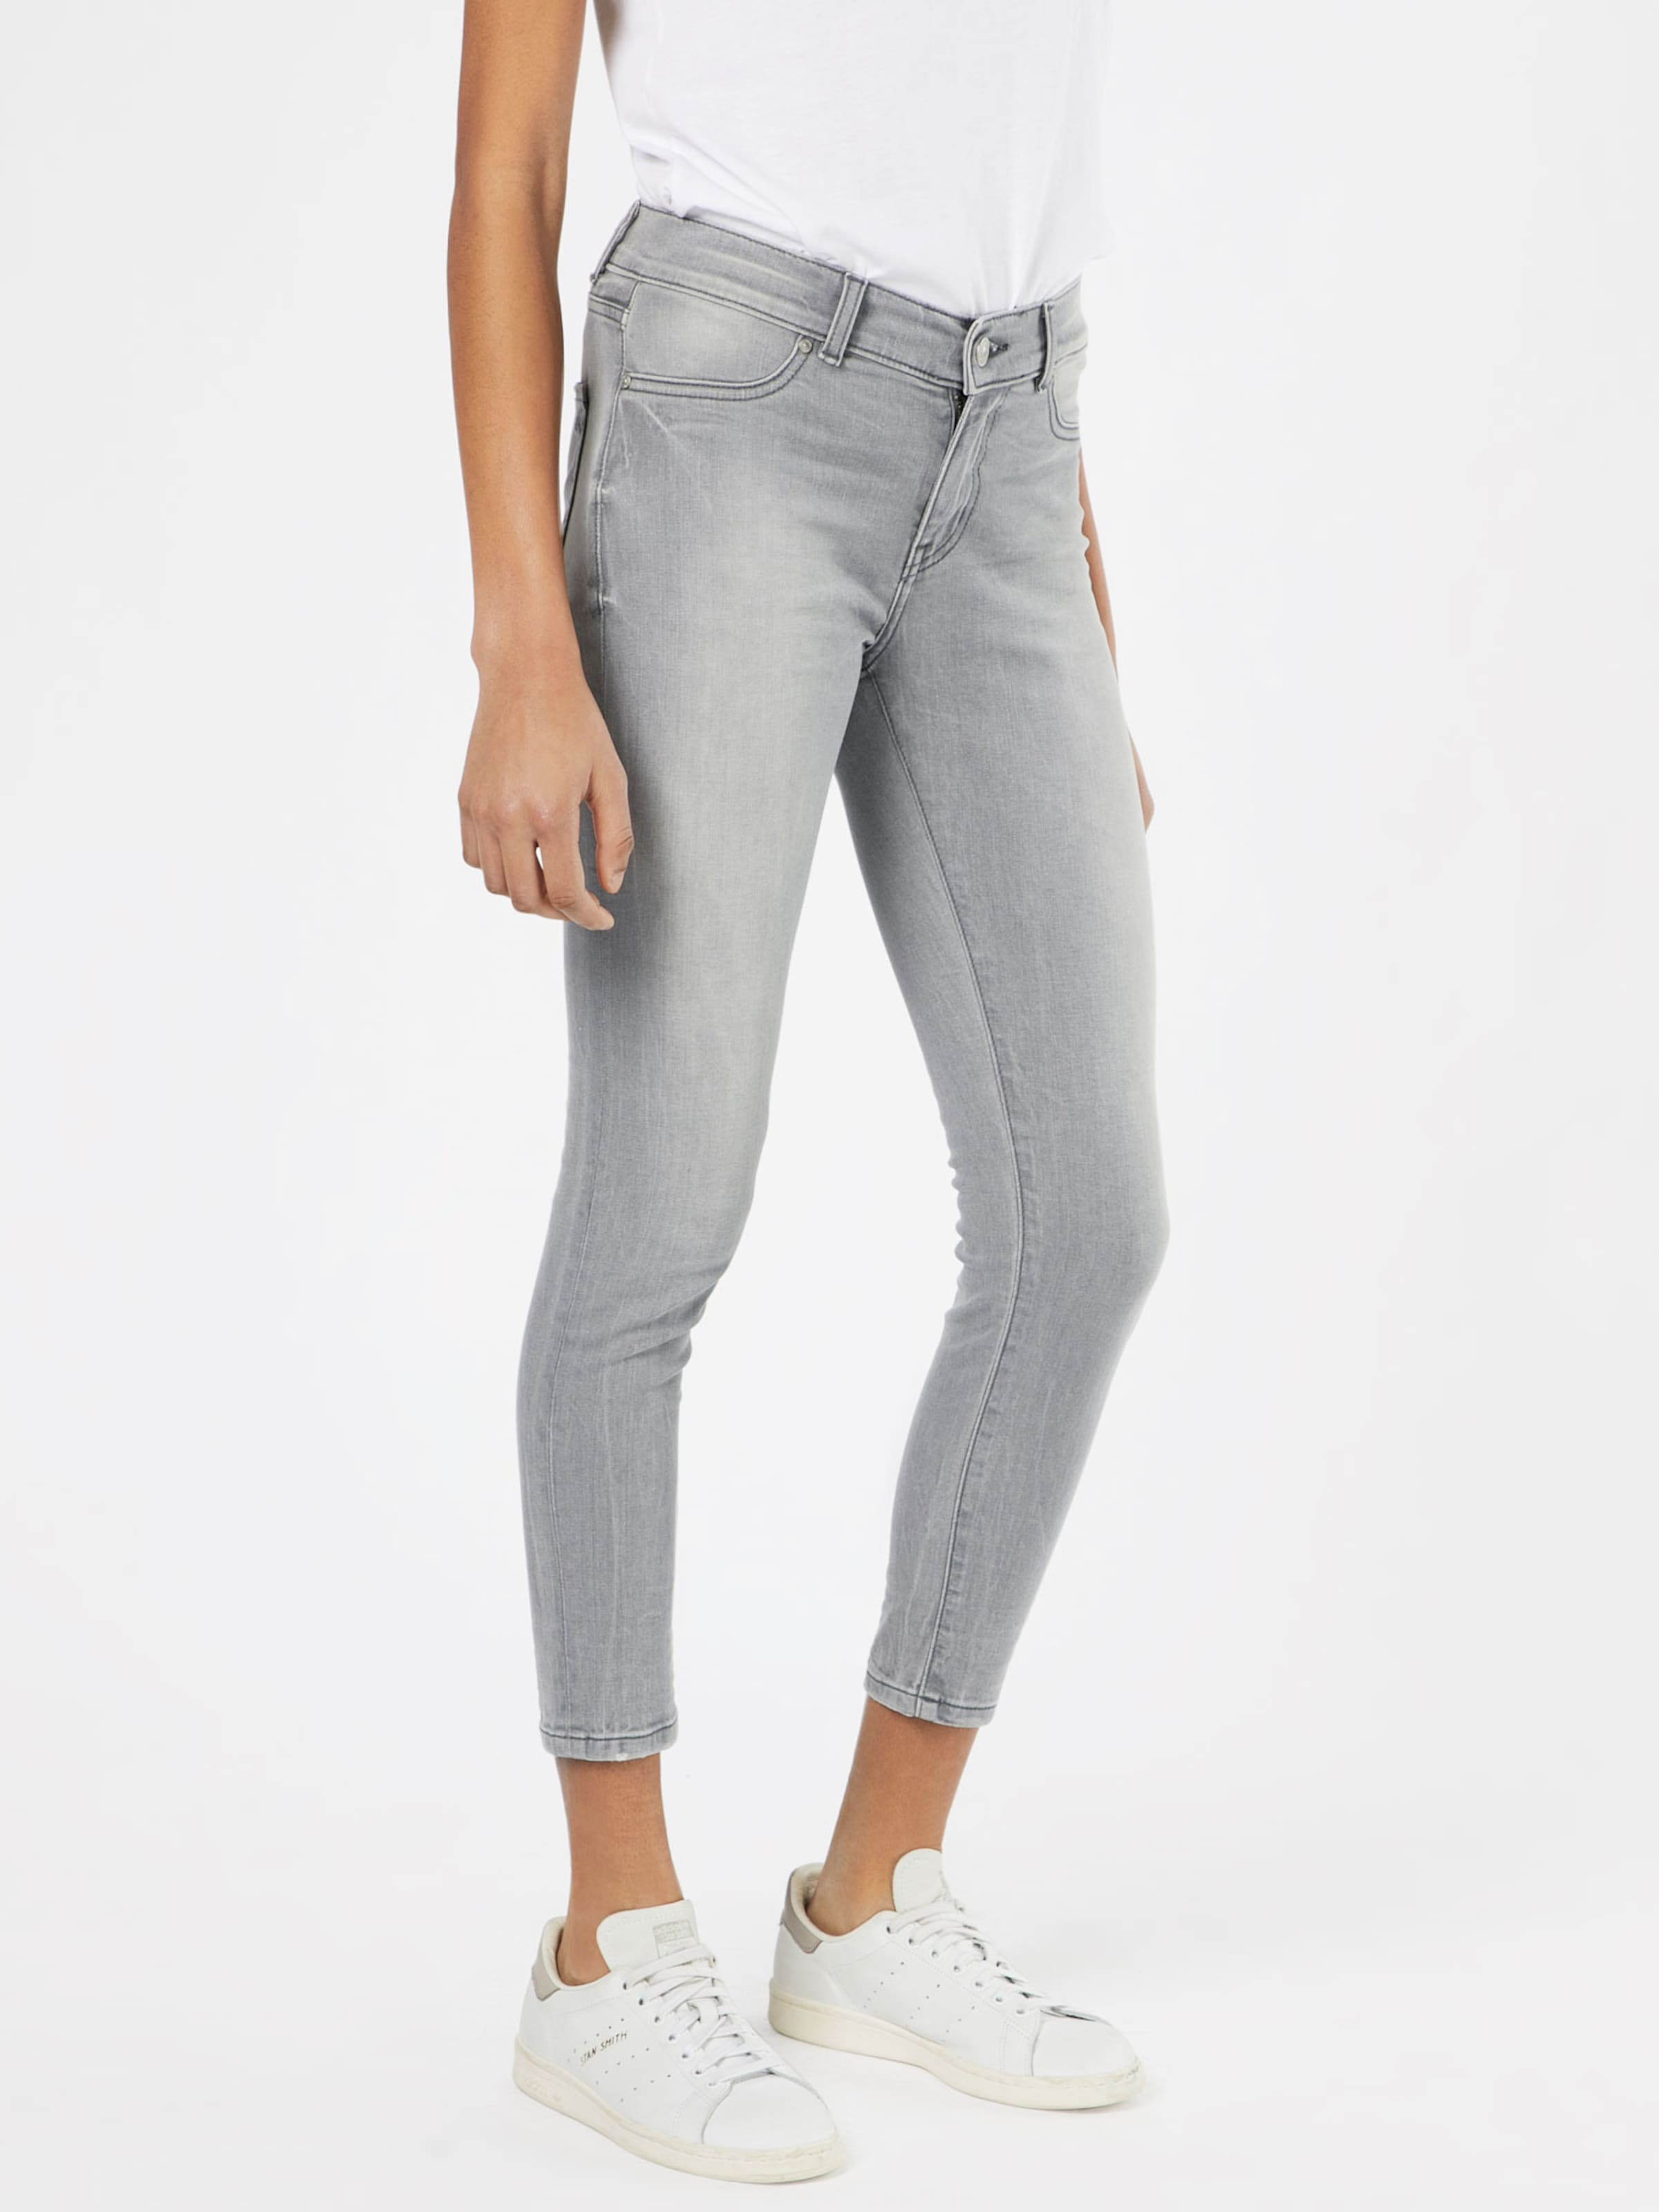 Ltb Jeans 'lonia' In Denim Grey EH9YIWD2e